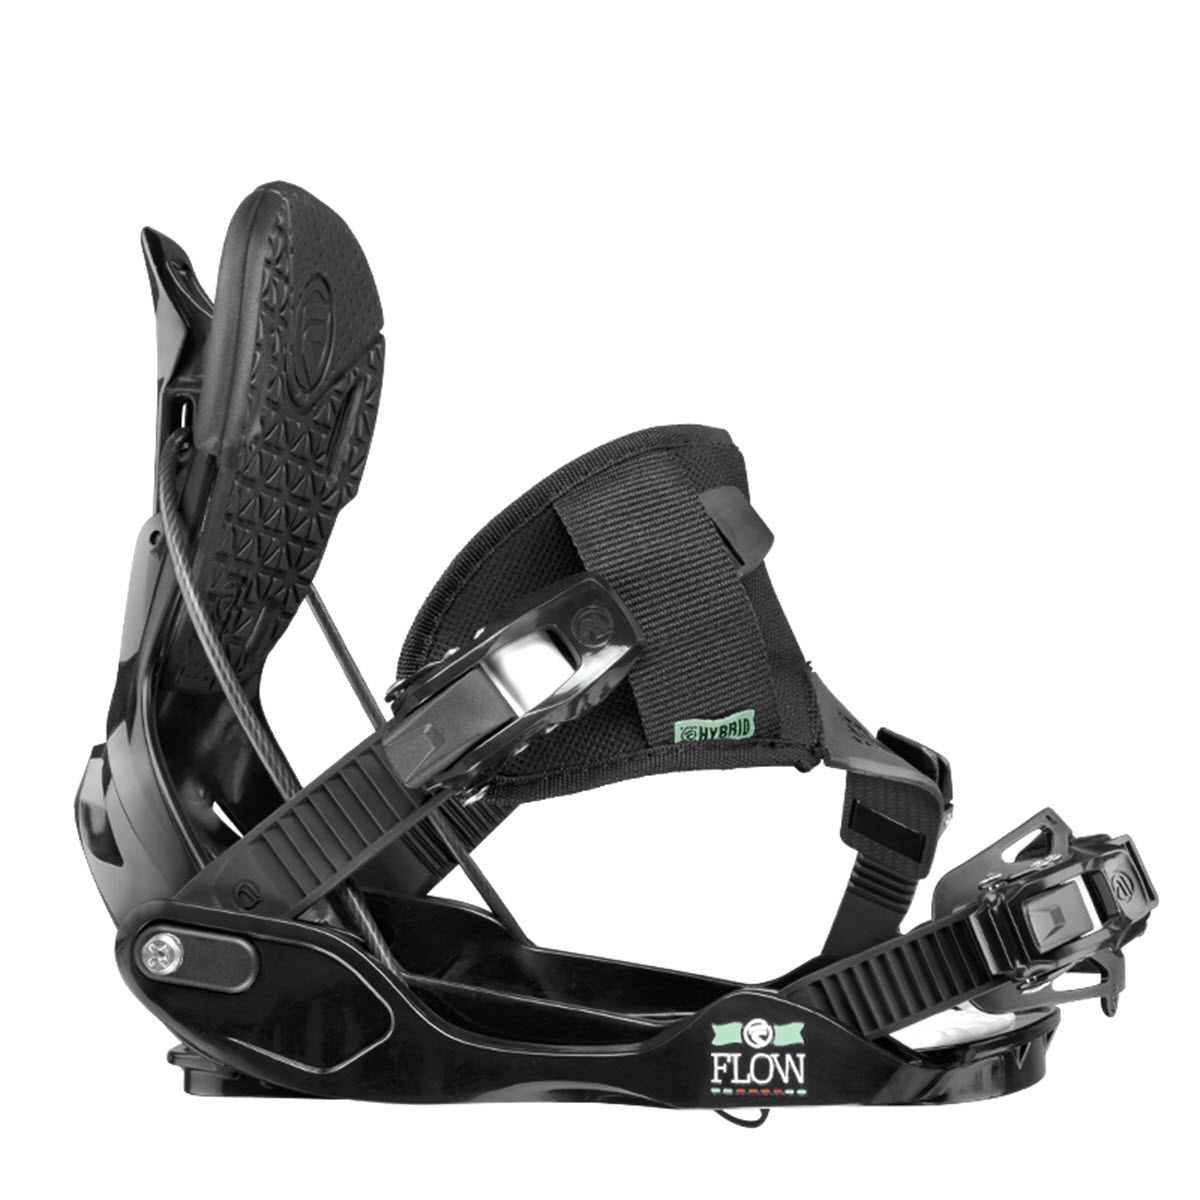 Flow Minx Hybrid Womens 2015 Snowboard Bindings Black